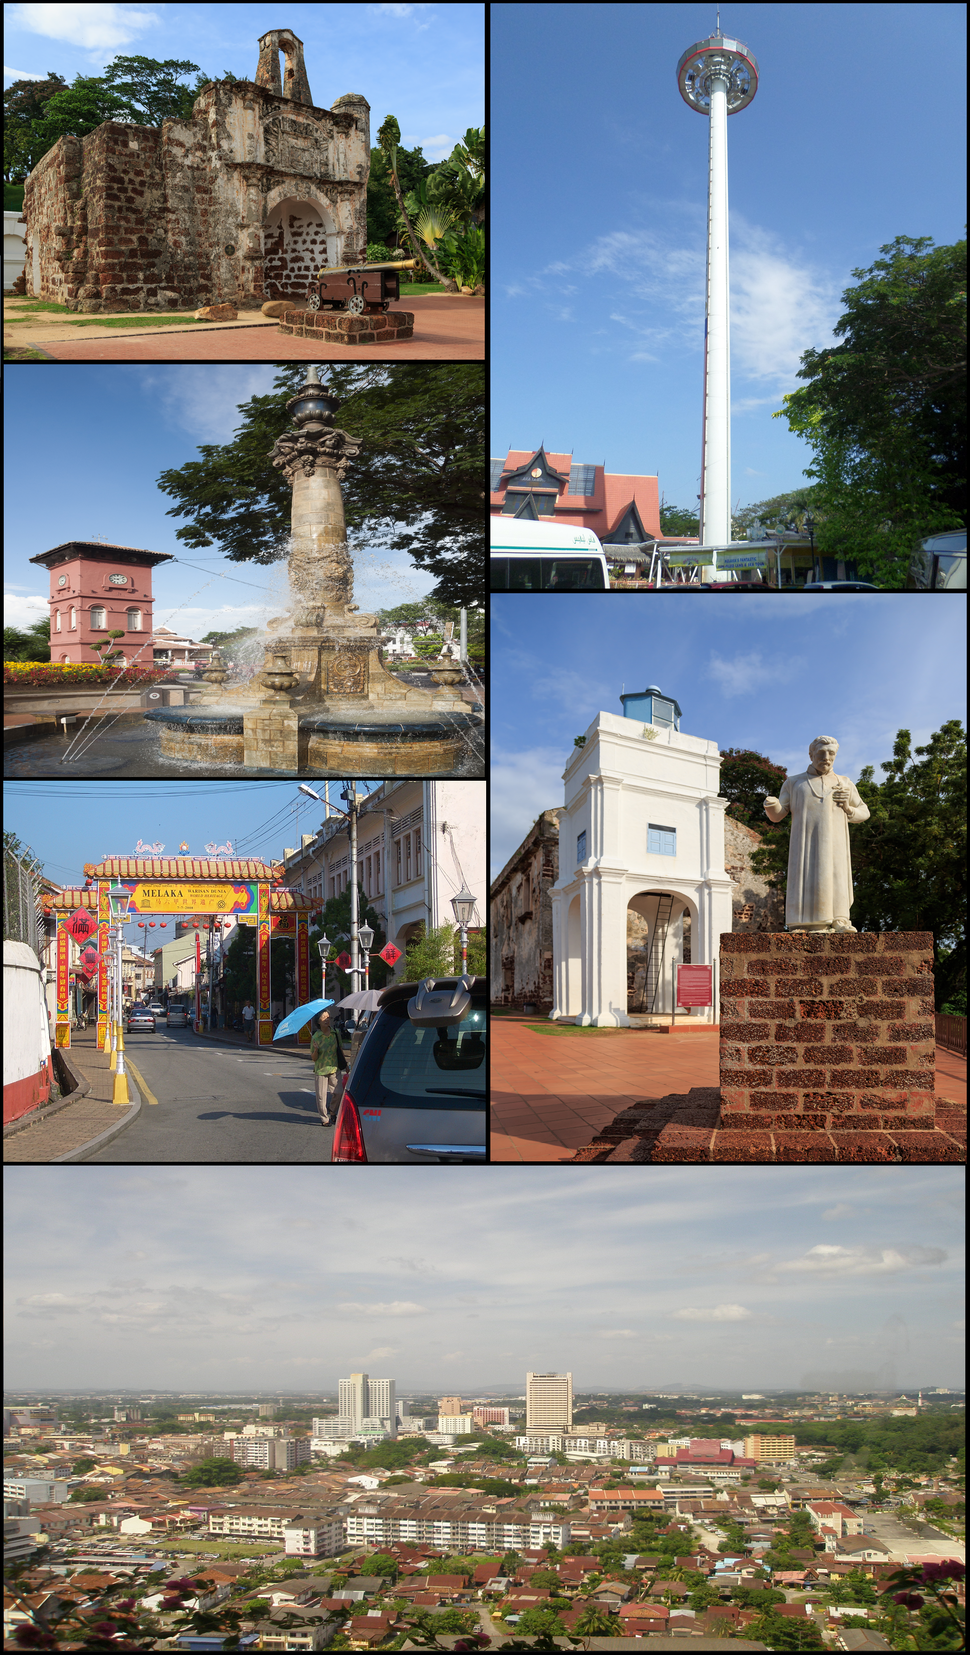 Clockwise from top right: Taming Sari Tower, St. Francis Xavier statue in front of St. Paul's Church, Malacca city centre, Chinatown, clock tower and fountain near the Stadthuys and A Famosa.